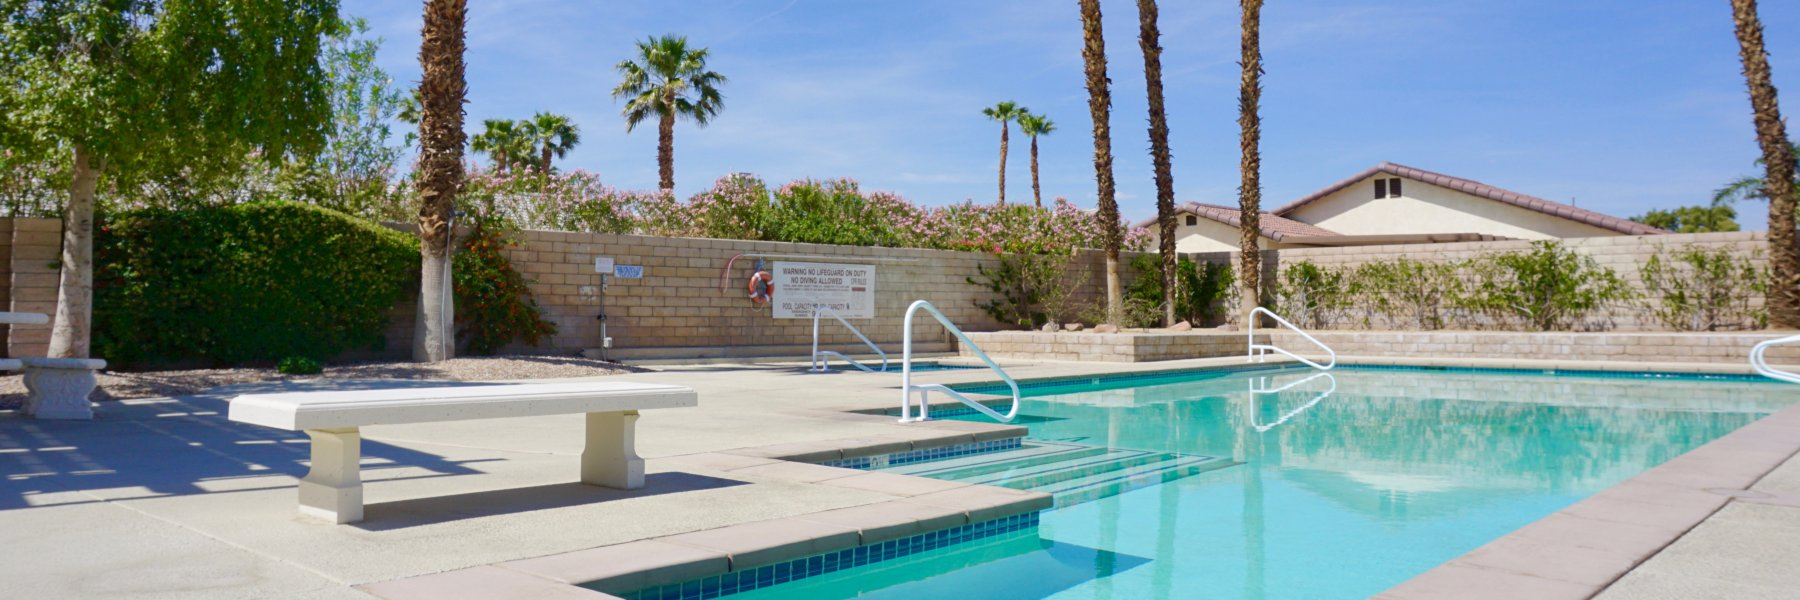 Shadow Crest is a community of homes in Cathedral City California